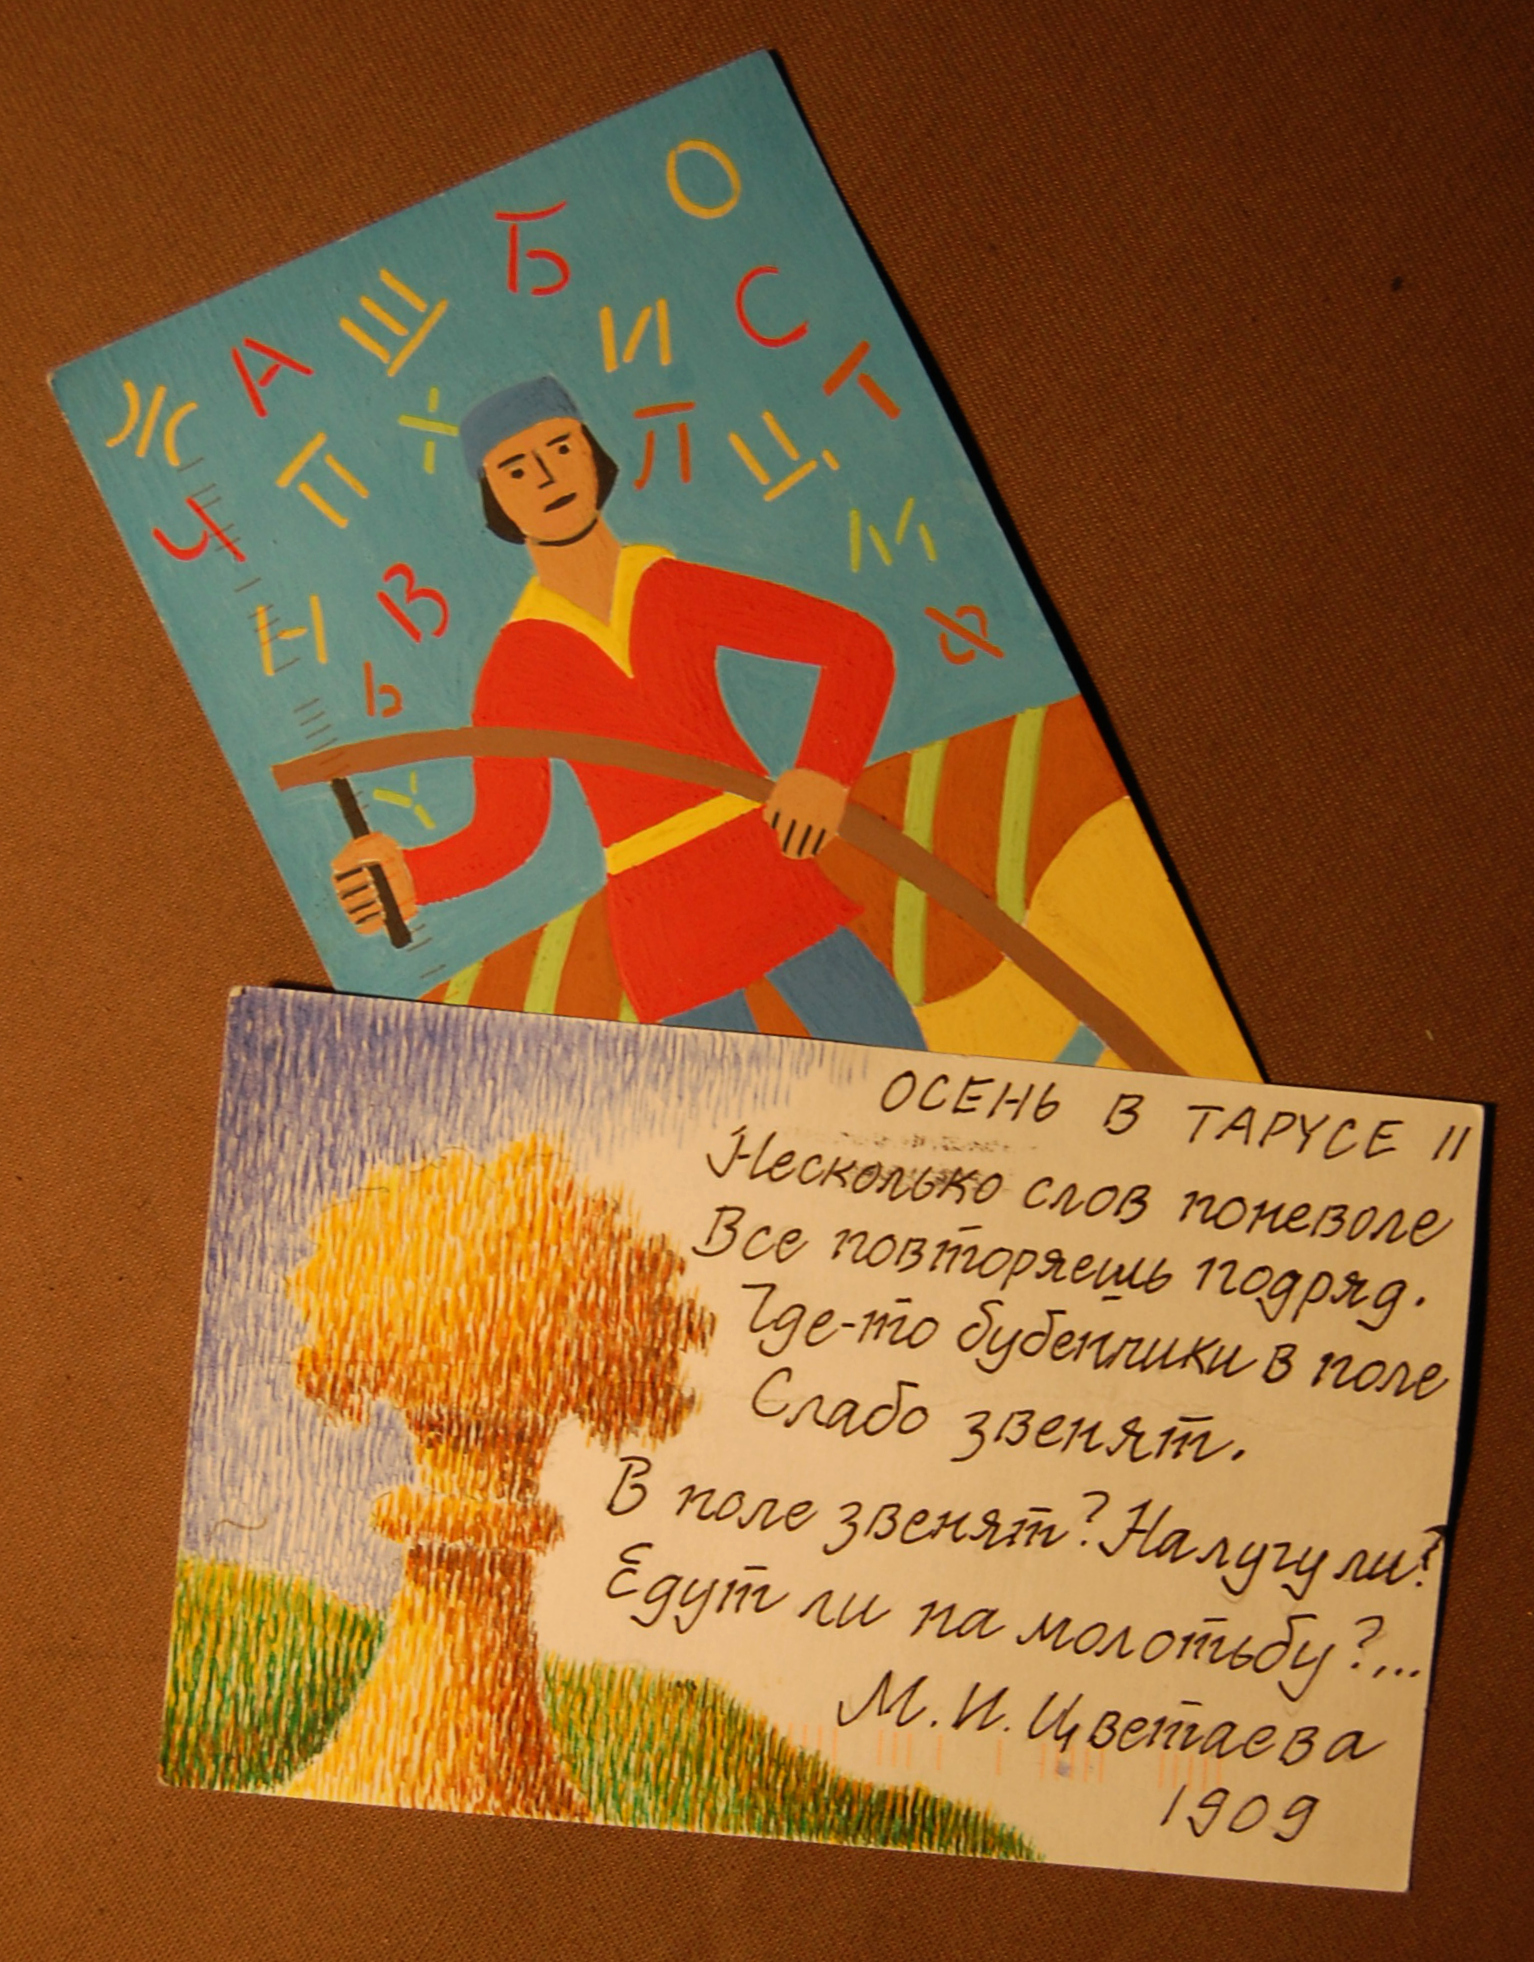 Autumn in Taurus 2 - Postcards 5 & 6